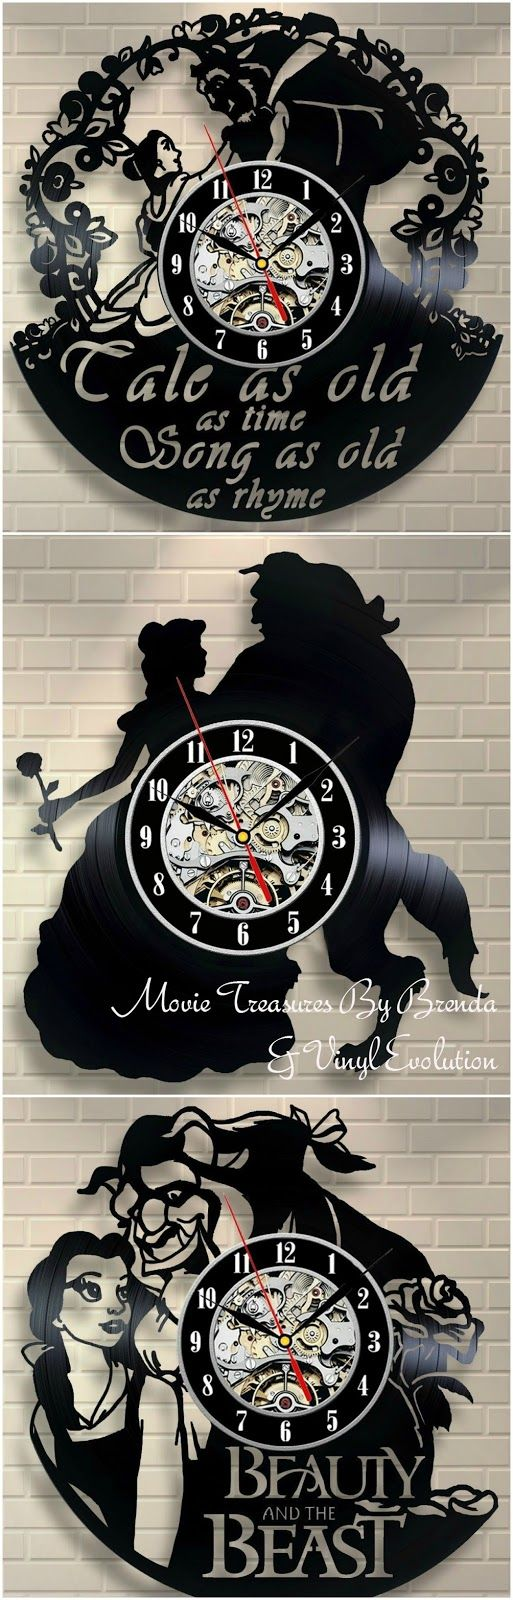 Beauty and the Beast vinyl wall clocked is crafted from an old vinyl record…